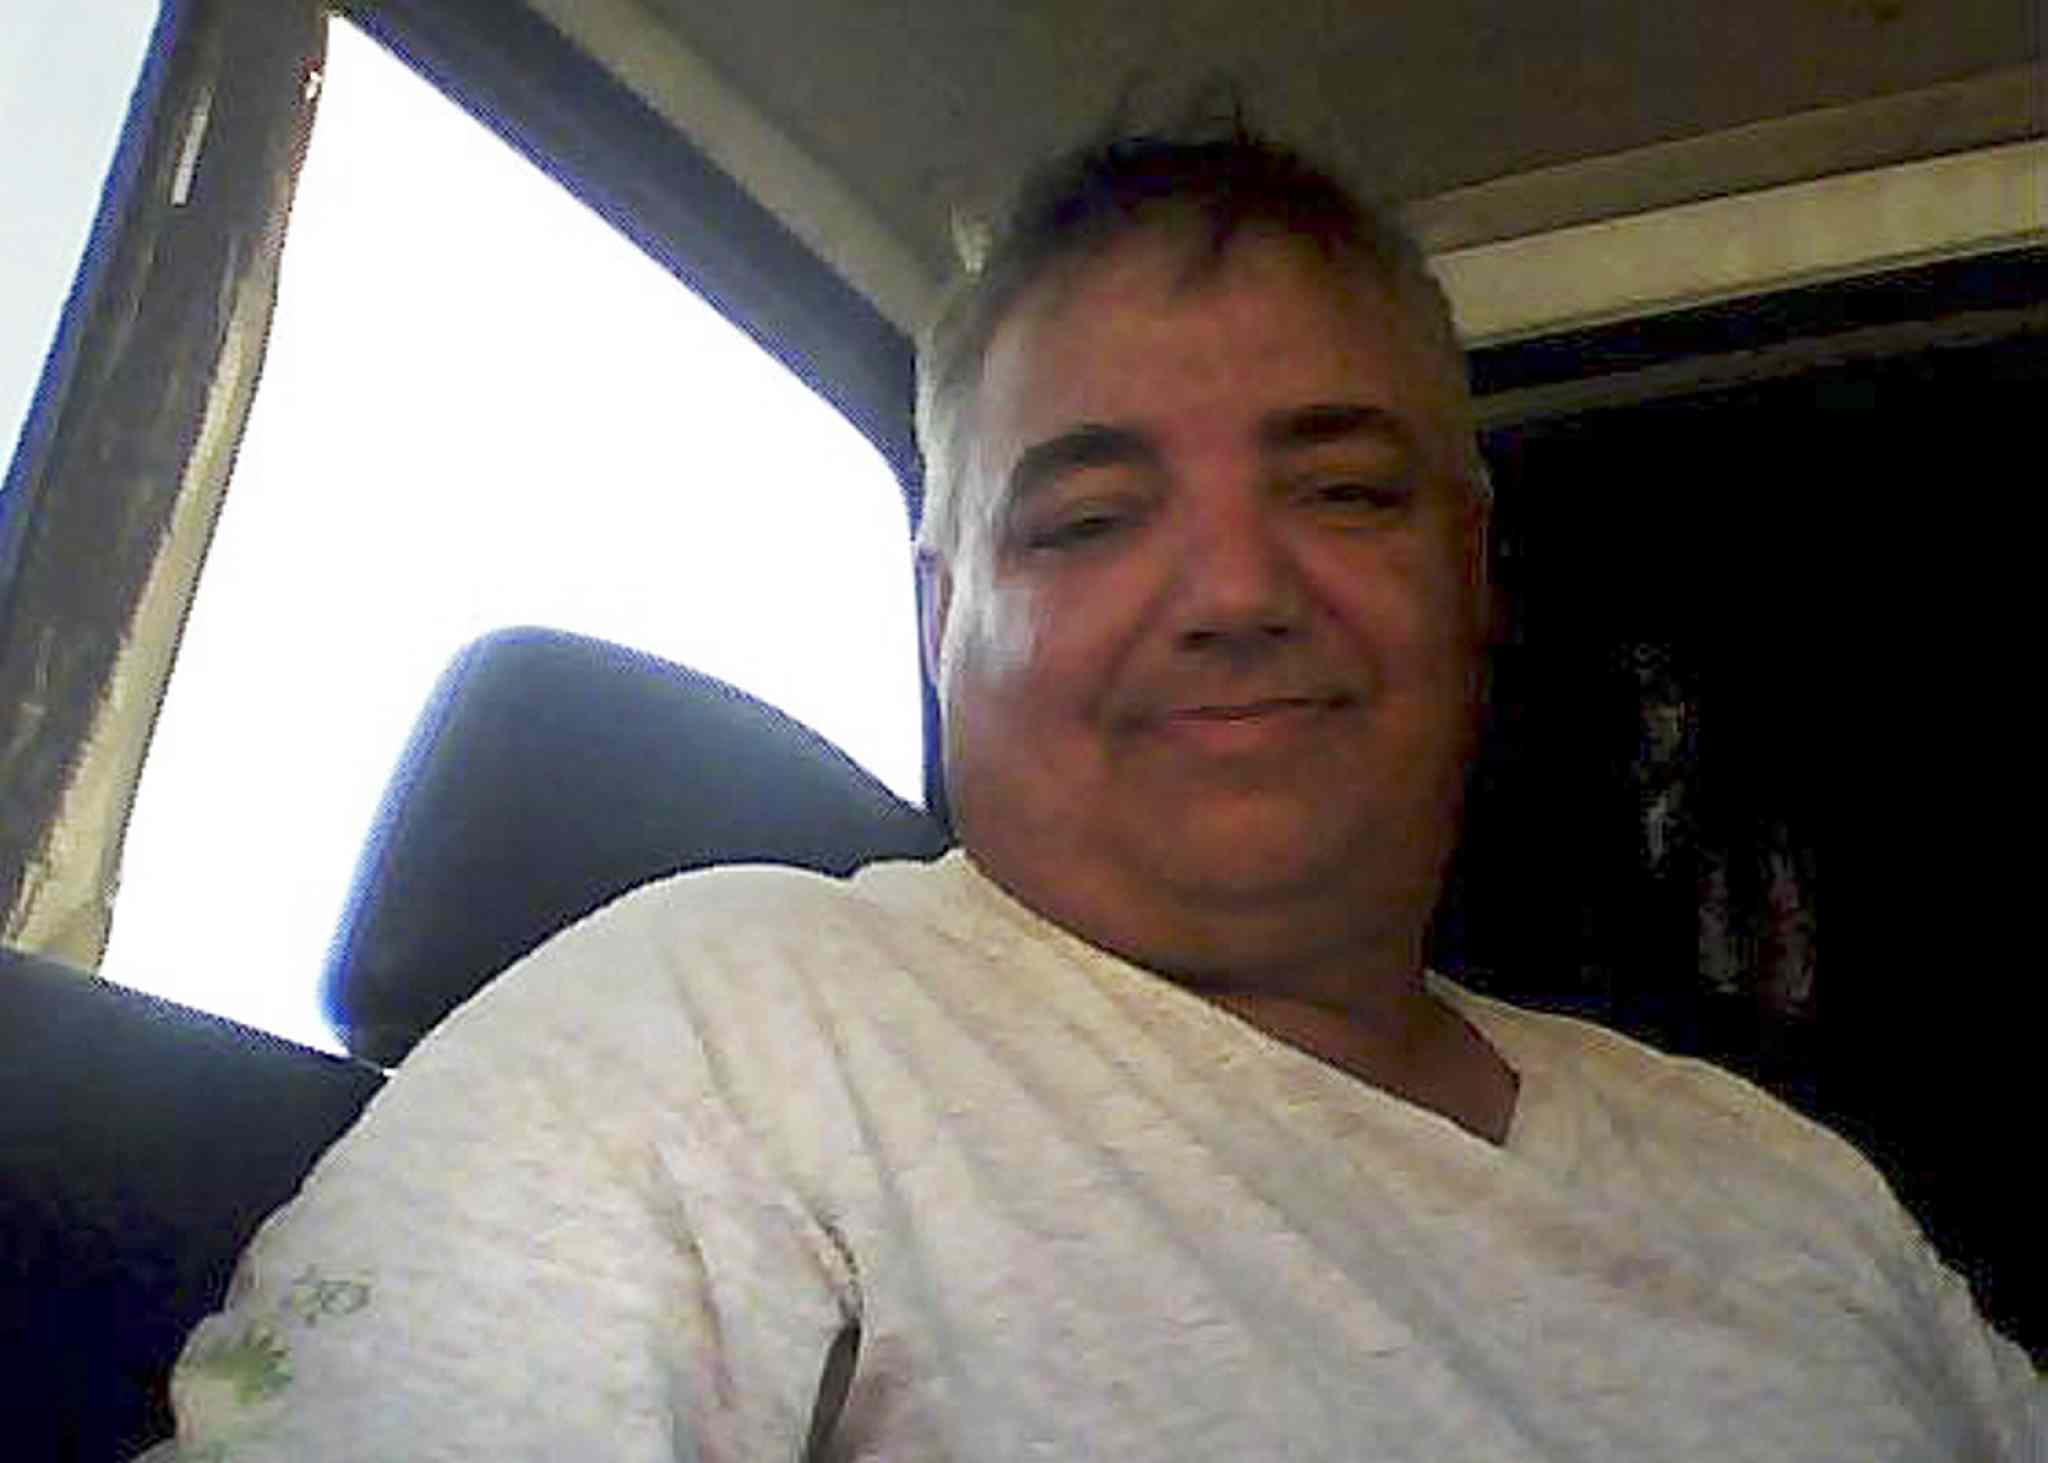 Cliff Malnyk's body was found in his burned-out house on Bloodvein early Saturday.